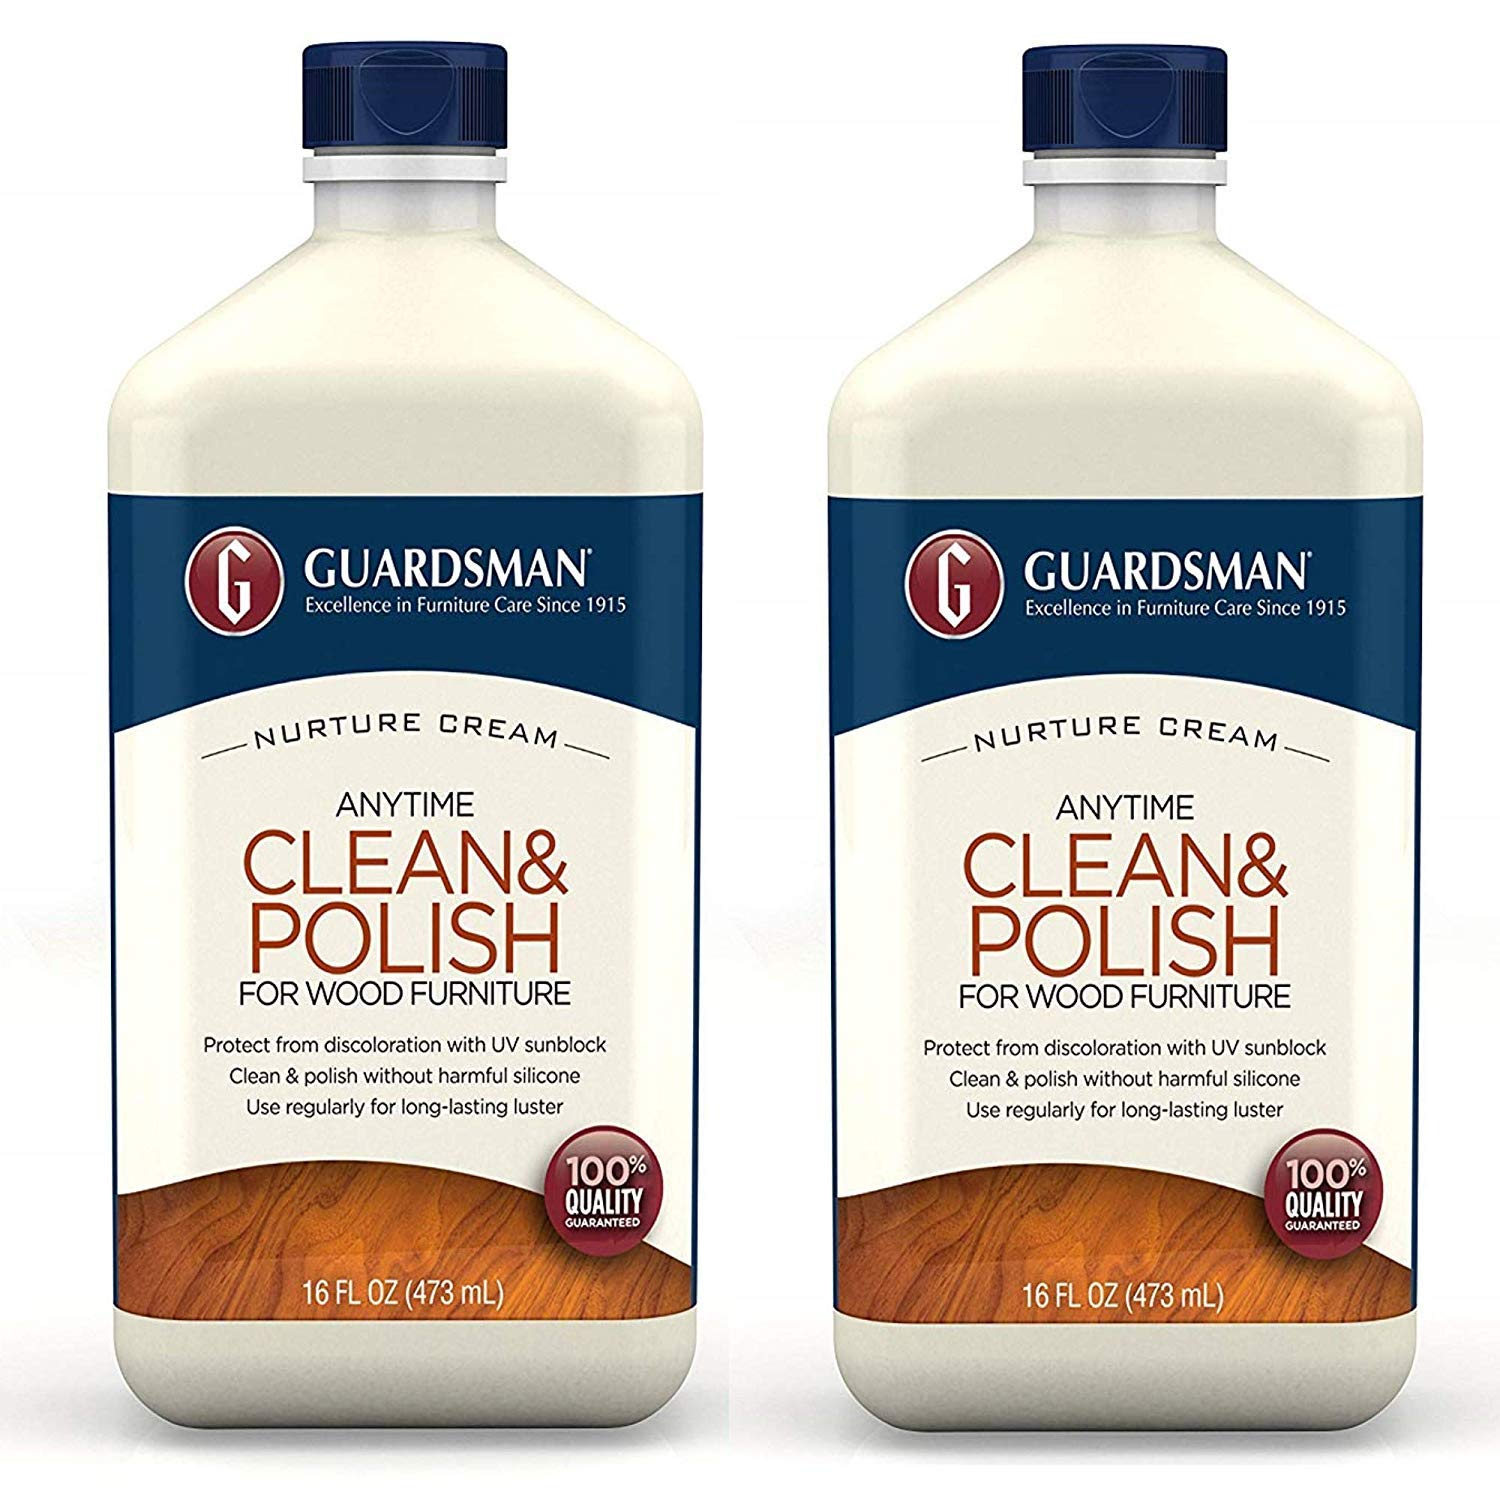 Guardsman Clean & Polish for Wood Furniture - Cream Polish 16 oz - Silicone Free, UV Protection - 461500 (2)